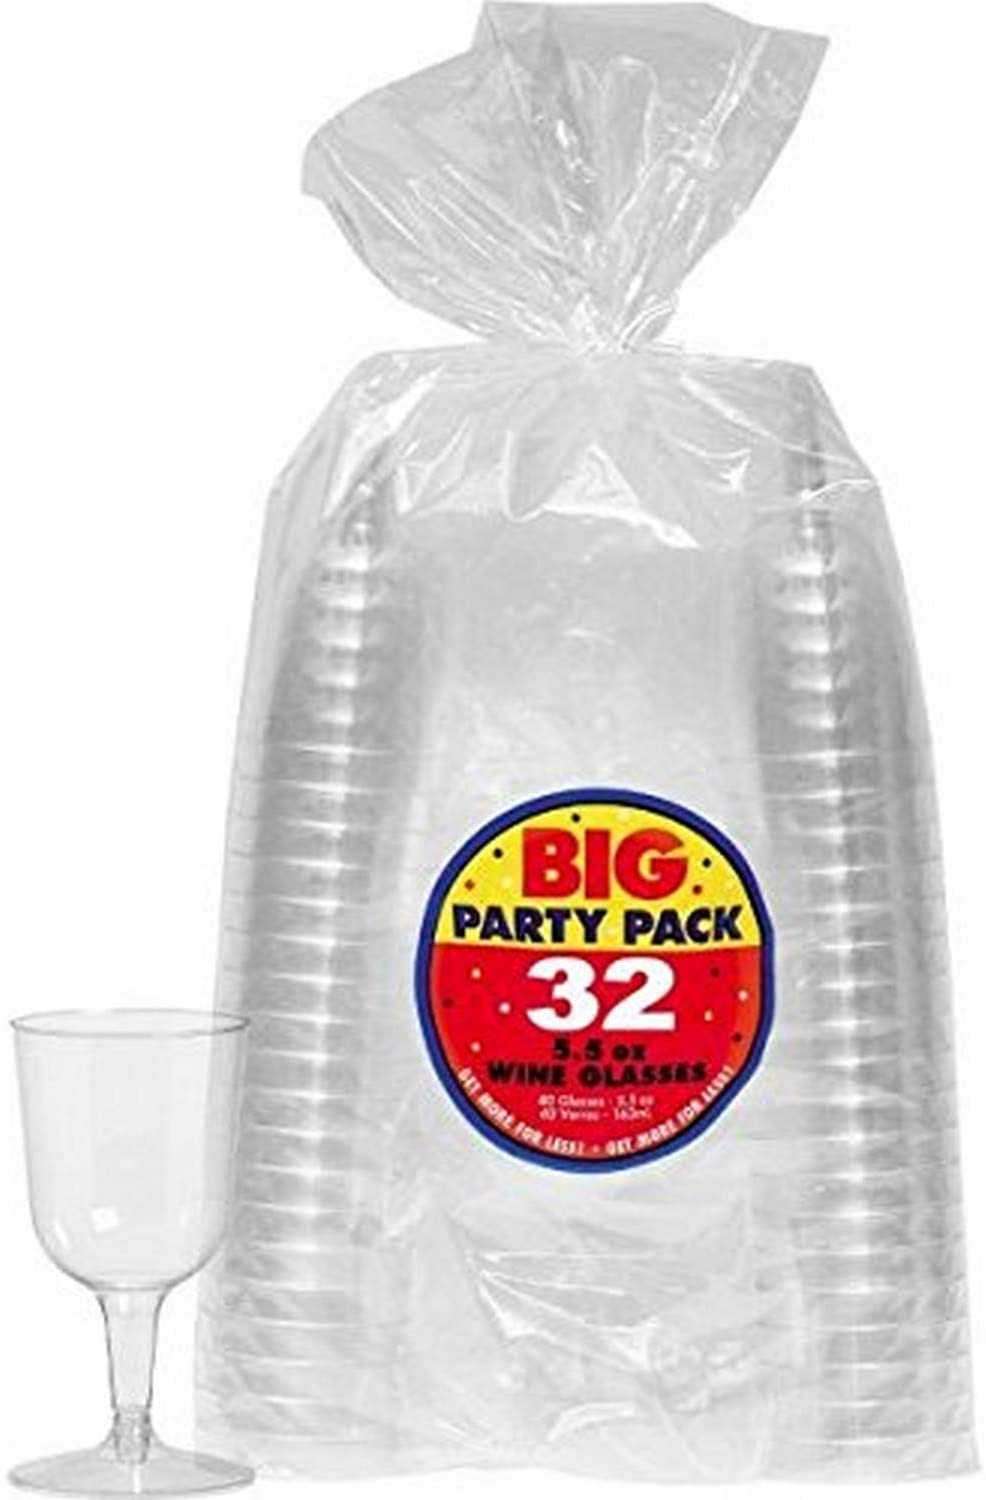 Amscan Big Party Pack Clear Plastic Wine Glasses, 5.5 oz (32